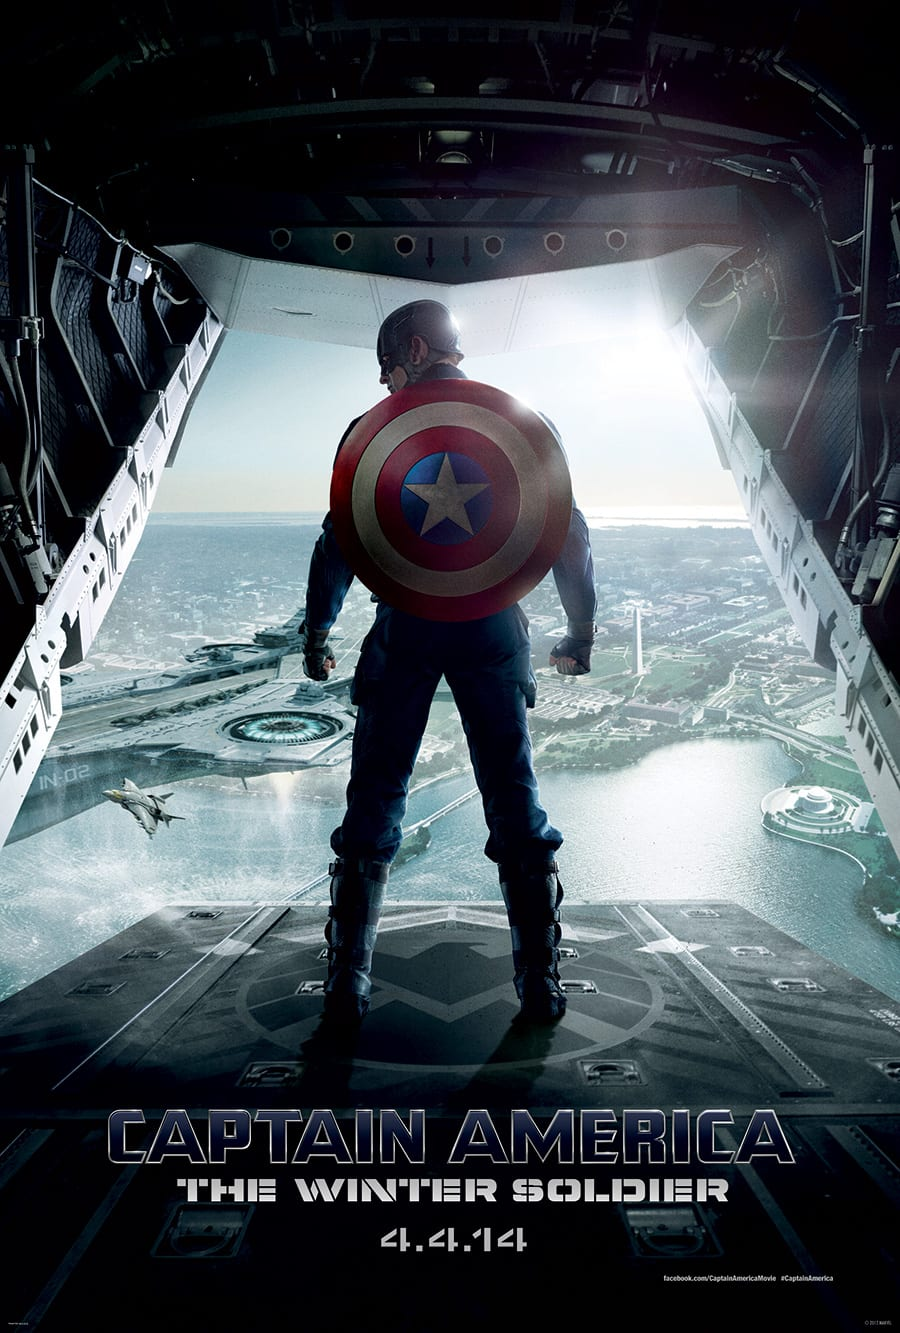 Meet Captain America From Captain America The Winter Sol R This Spring At Disneyland